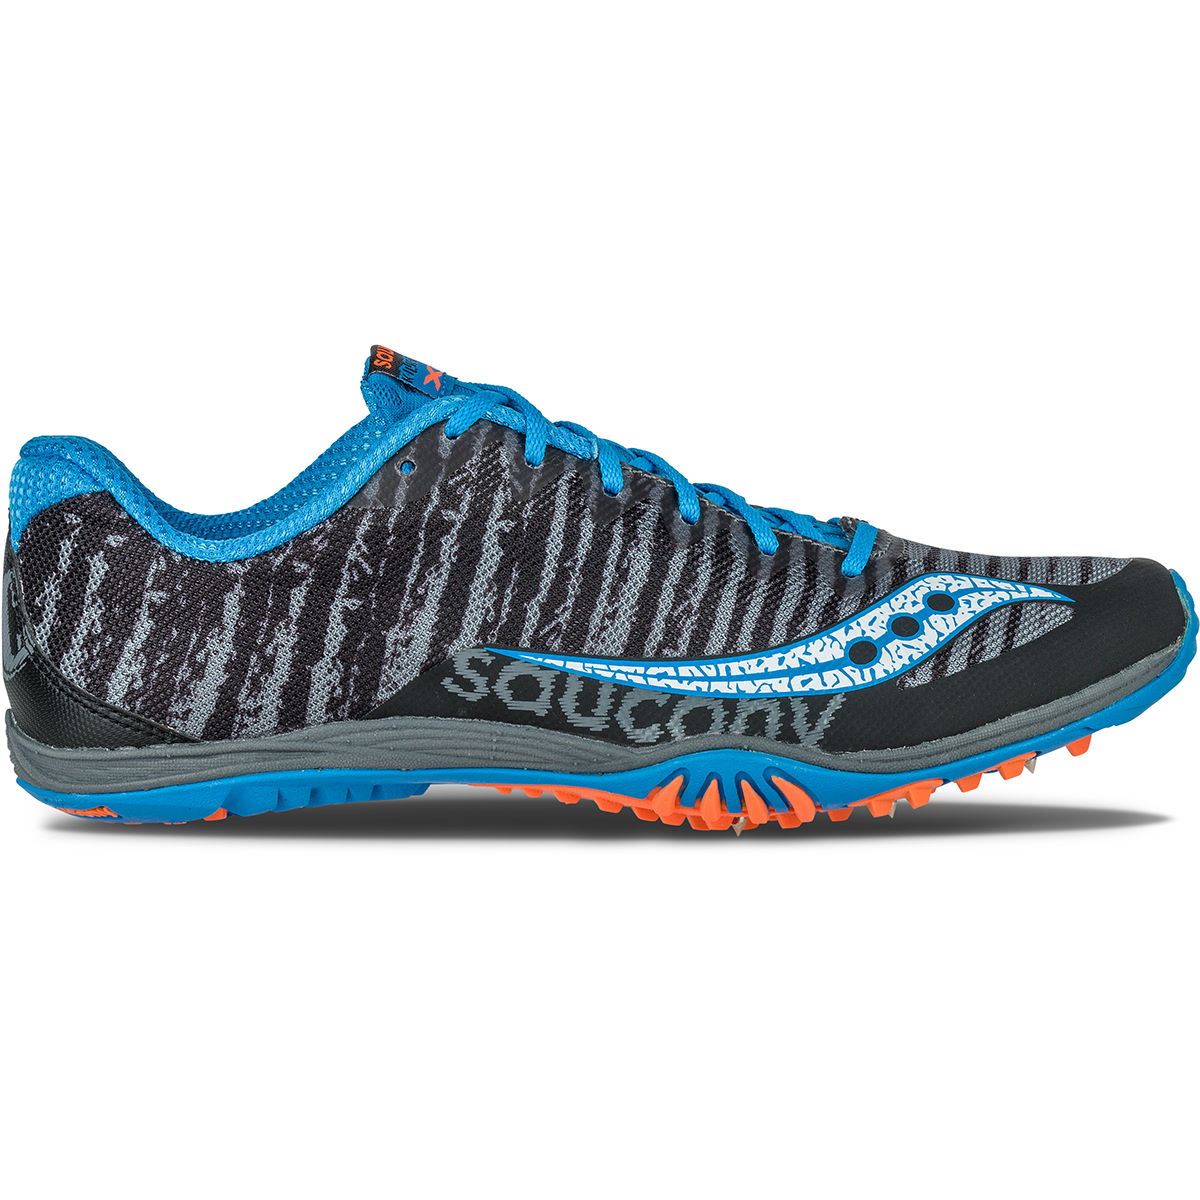 Chaussures de cross-country Saucony Kilkenny (AH16) - 8,5 UK Black/Carolina Chaussures de running à pointes